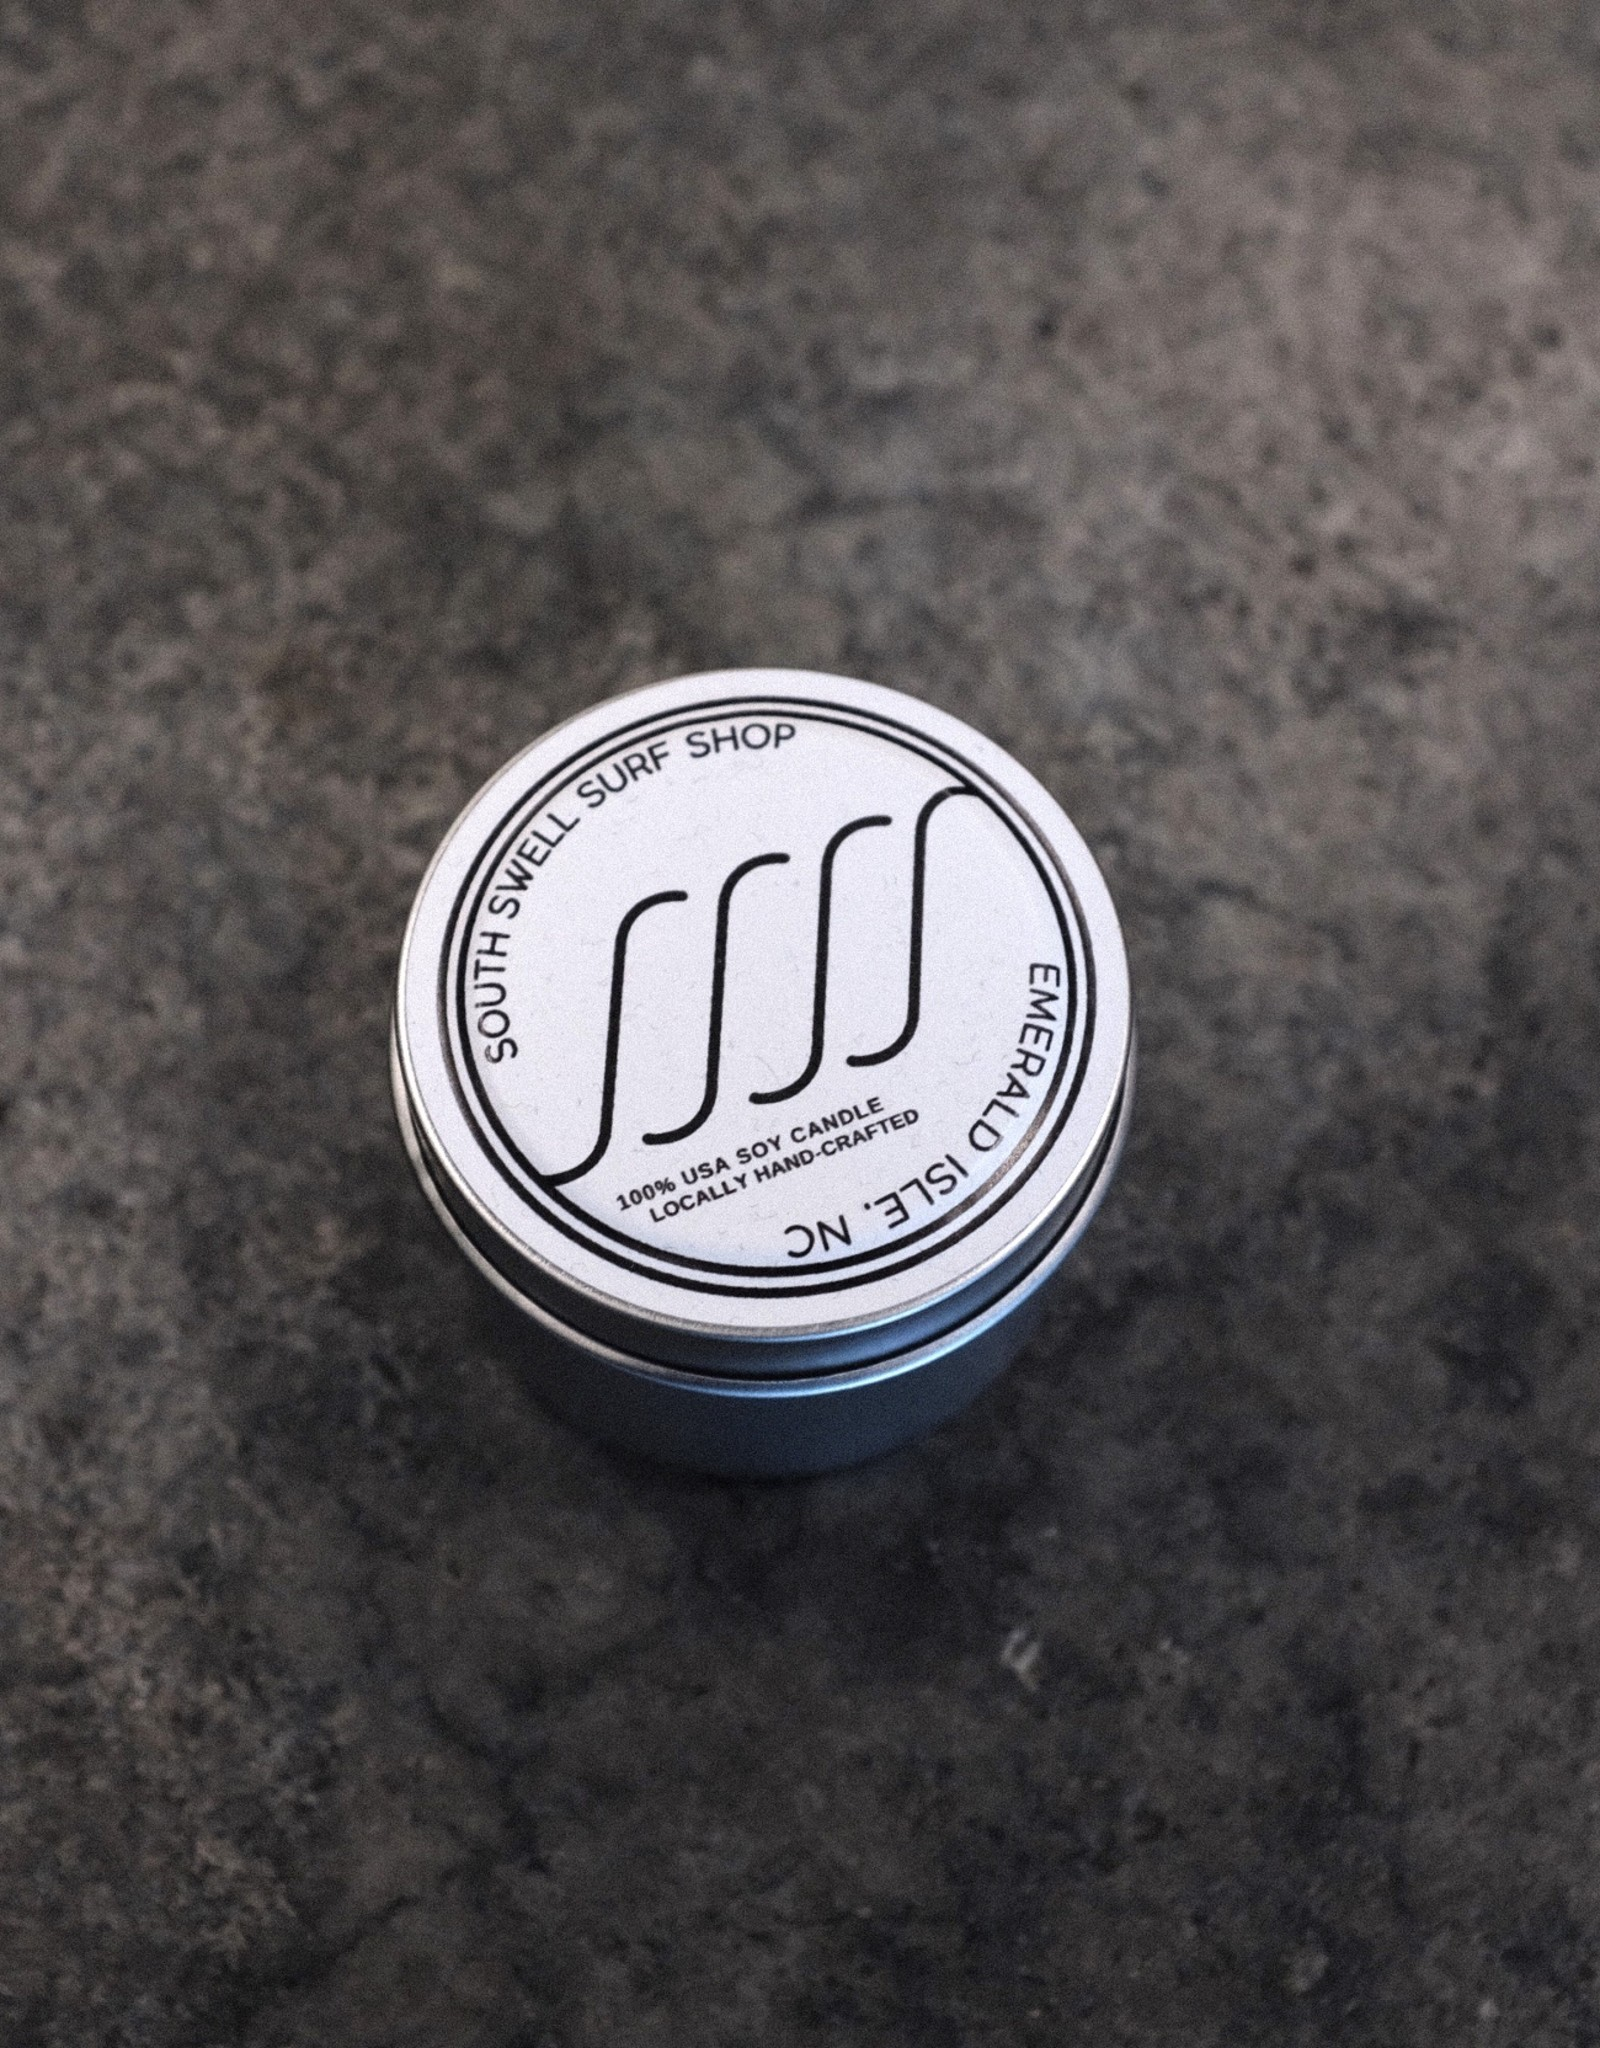 South Swell Surf Shop SSSS Candle Small